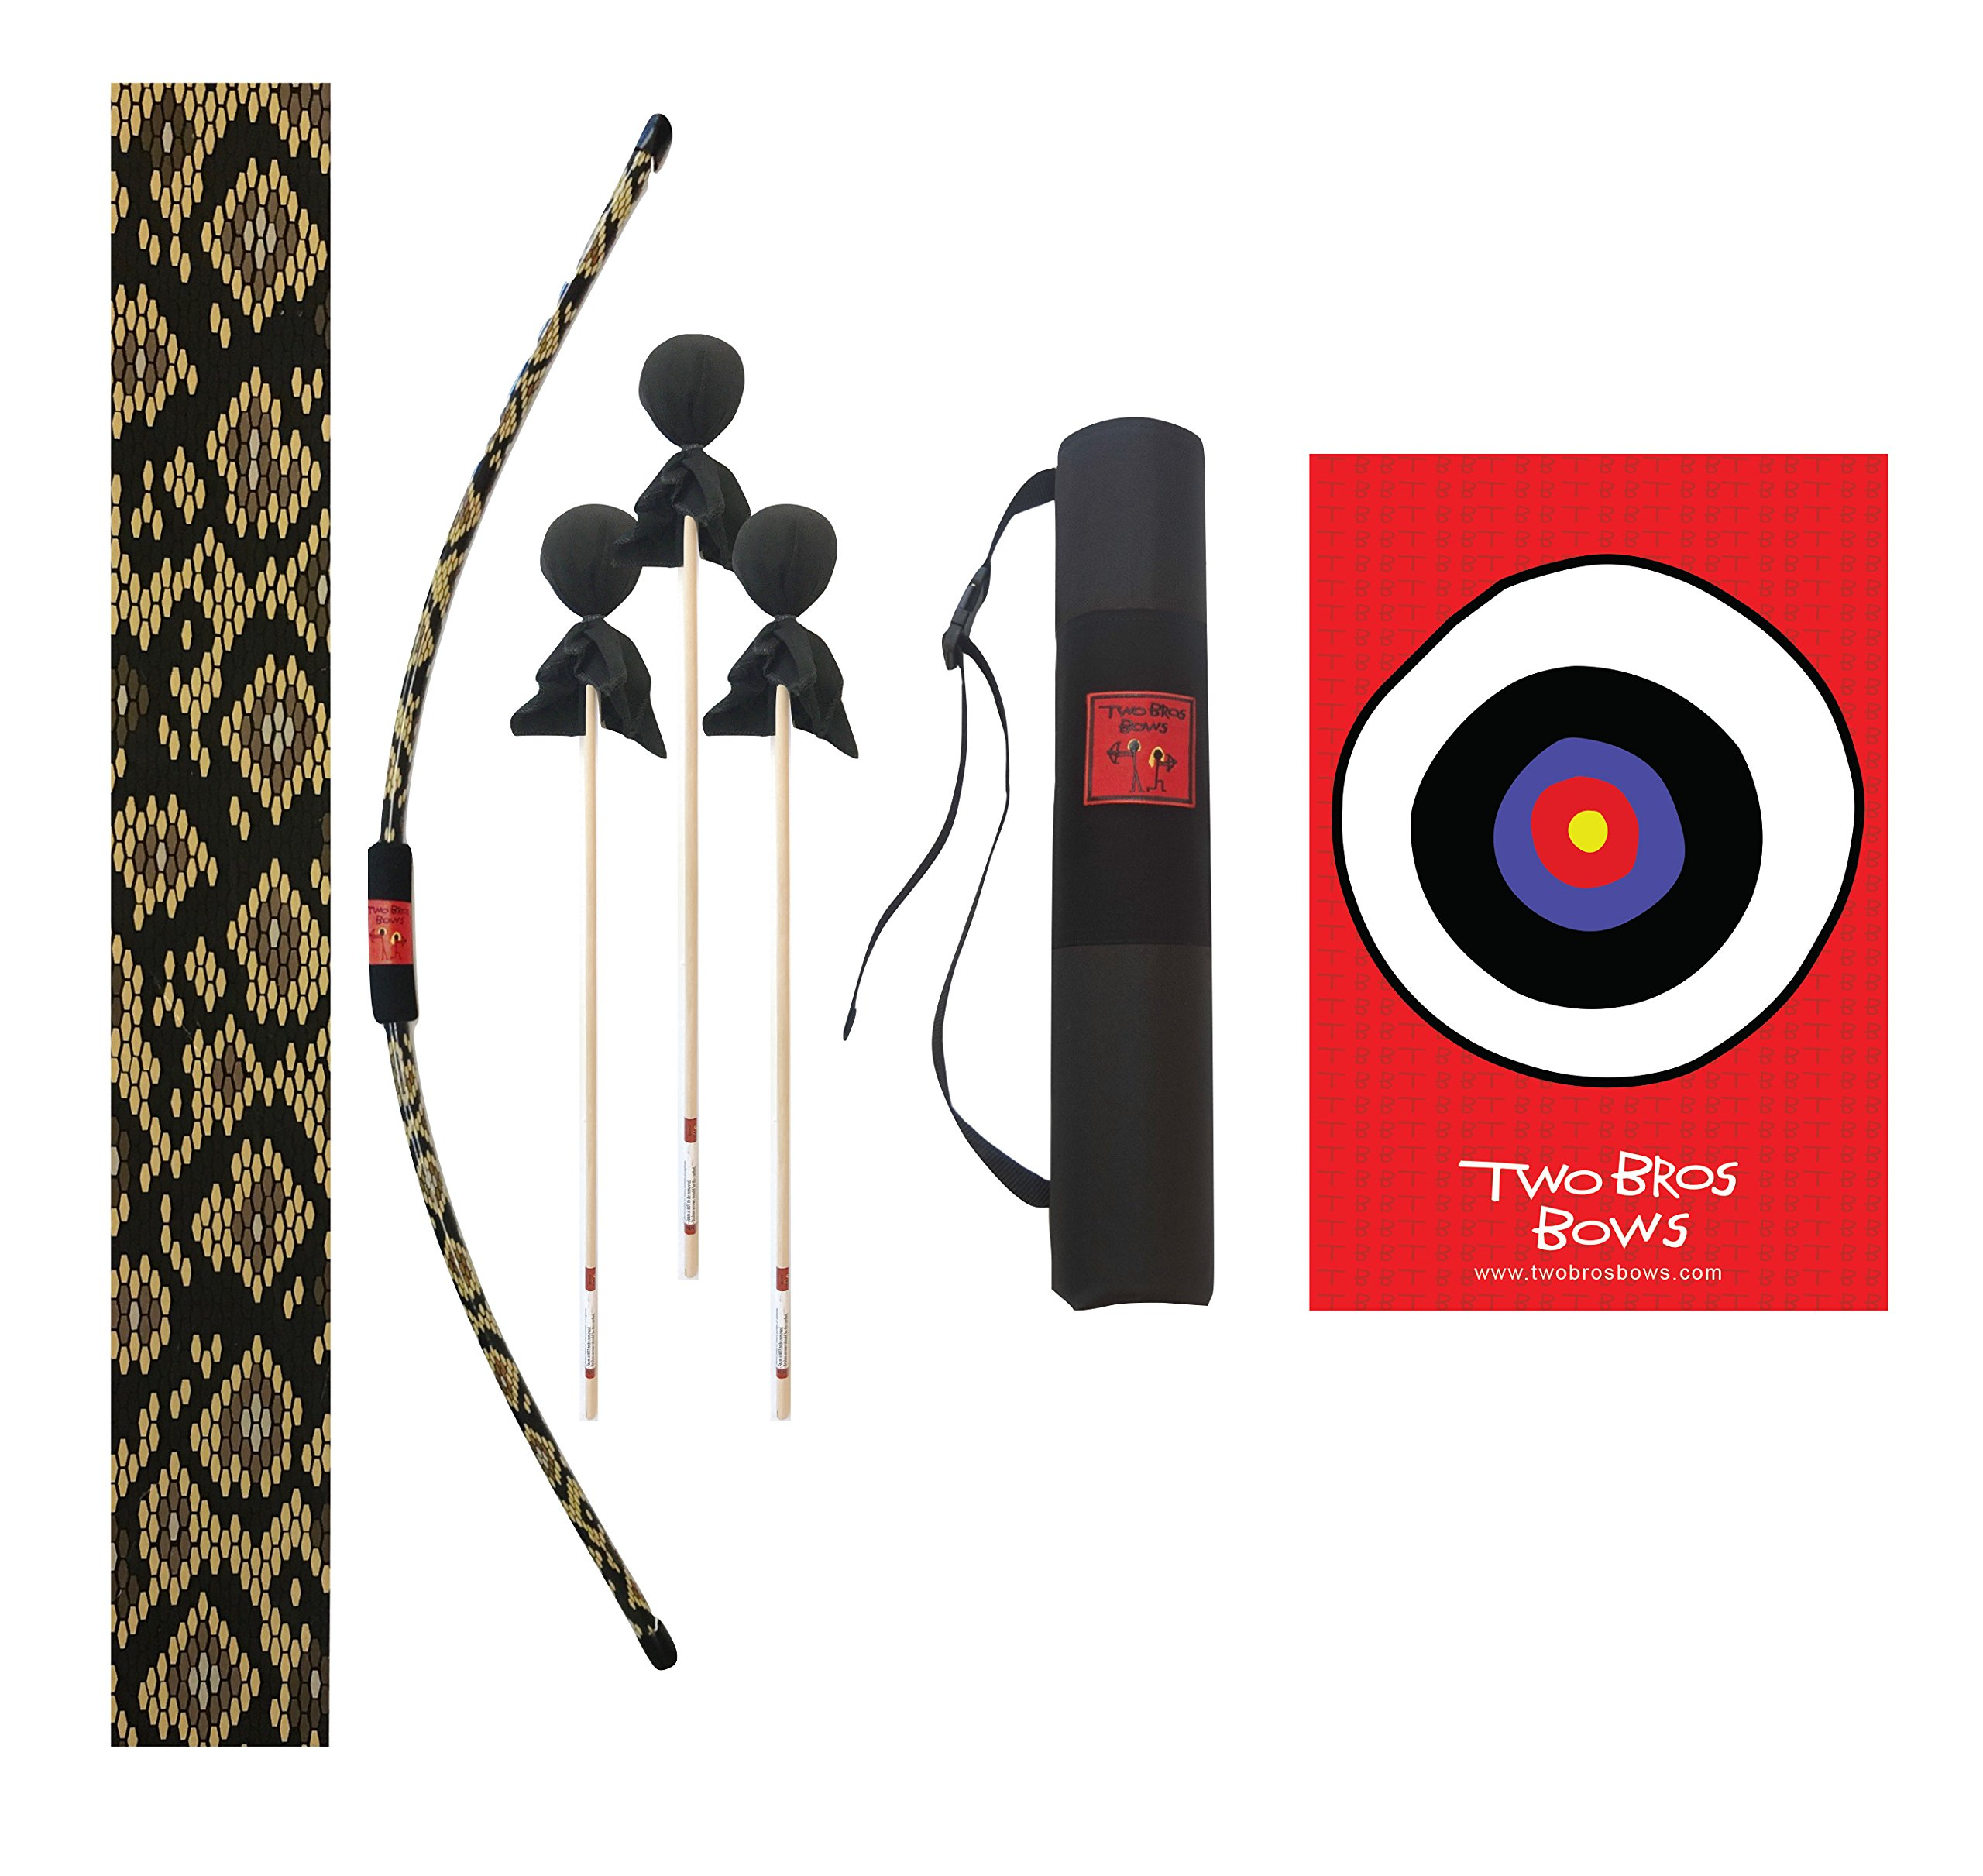 Two Bros Bows Python Archery Combo Set by Two Bros Bows, LLC